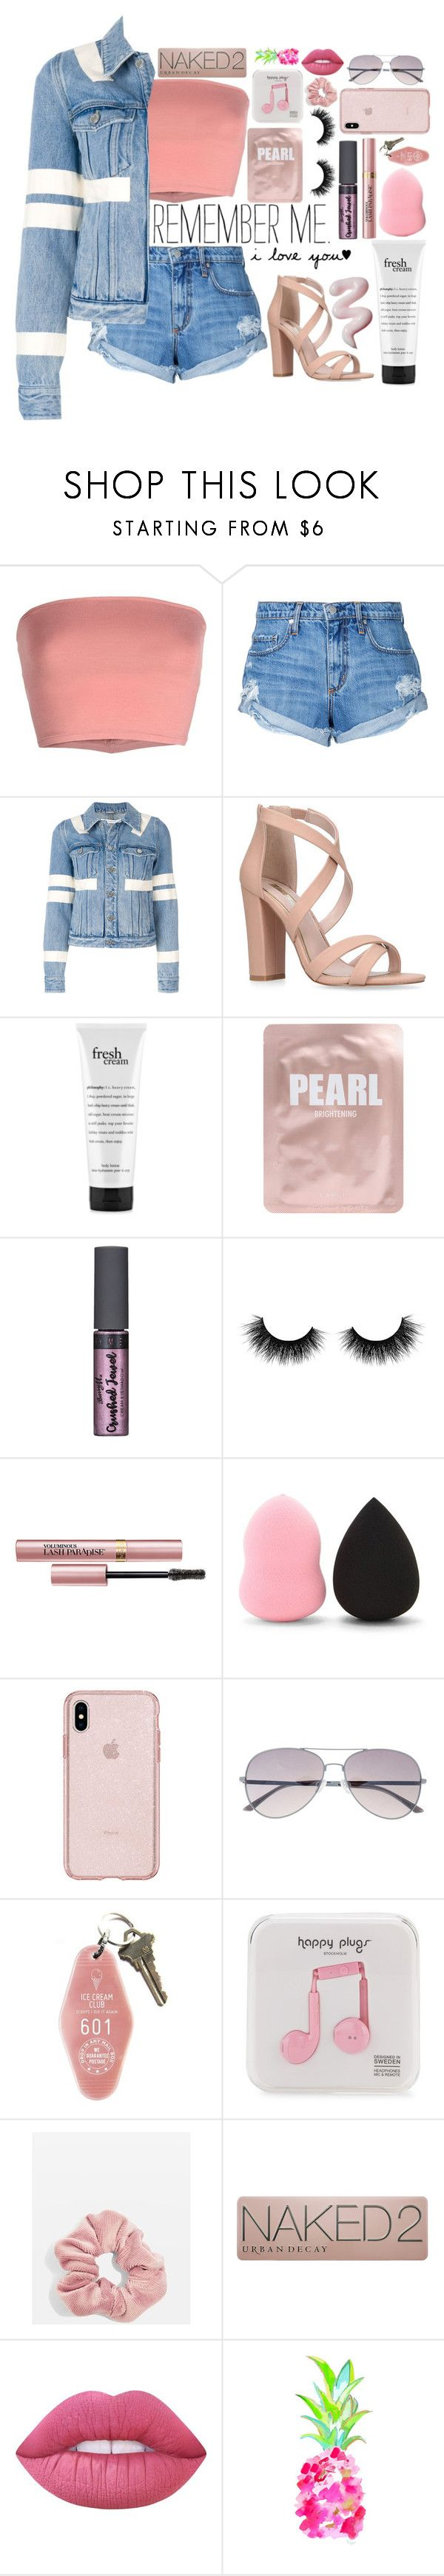 """""""Ugh Description Deleted"""" by juneisbest ❤ liked on Polyvore featuring Annarita N., Nobody Denim, Givenchy, Miss KG, philosophy, Lapcos, Artémes, L'Oréal Paris, Forever 21 and Happy Plugs"""